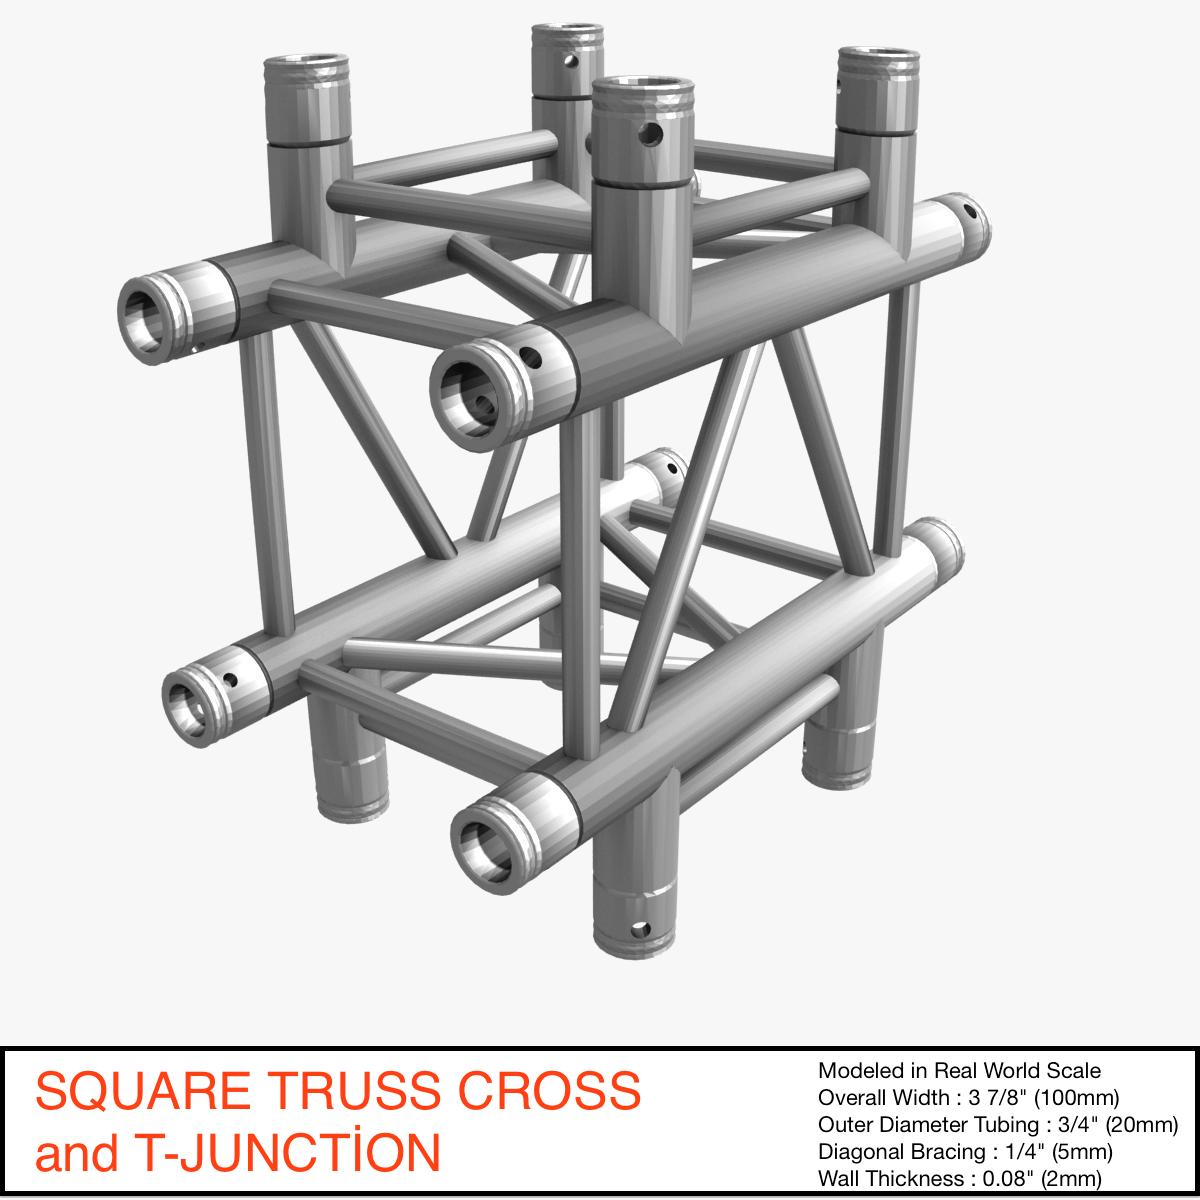 square truss cross and t- junction 31 3d model 3ds max dxf fbx b3d c4d other  obj 268901